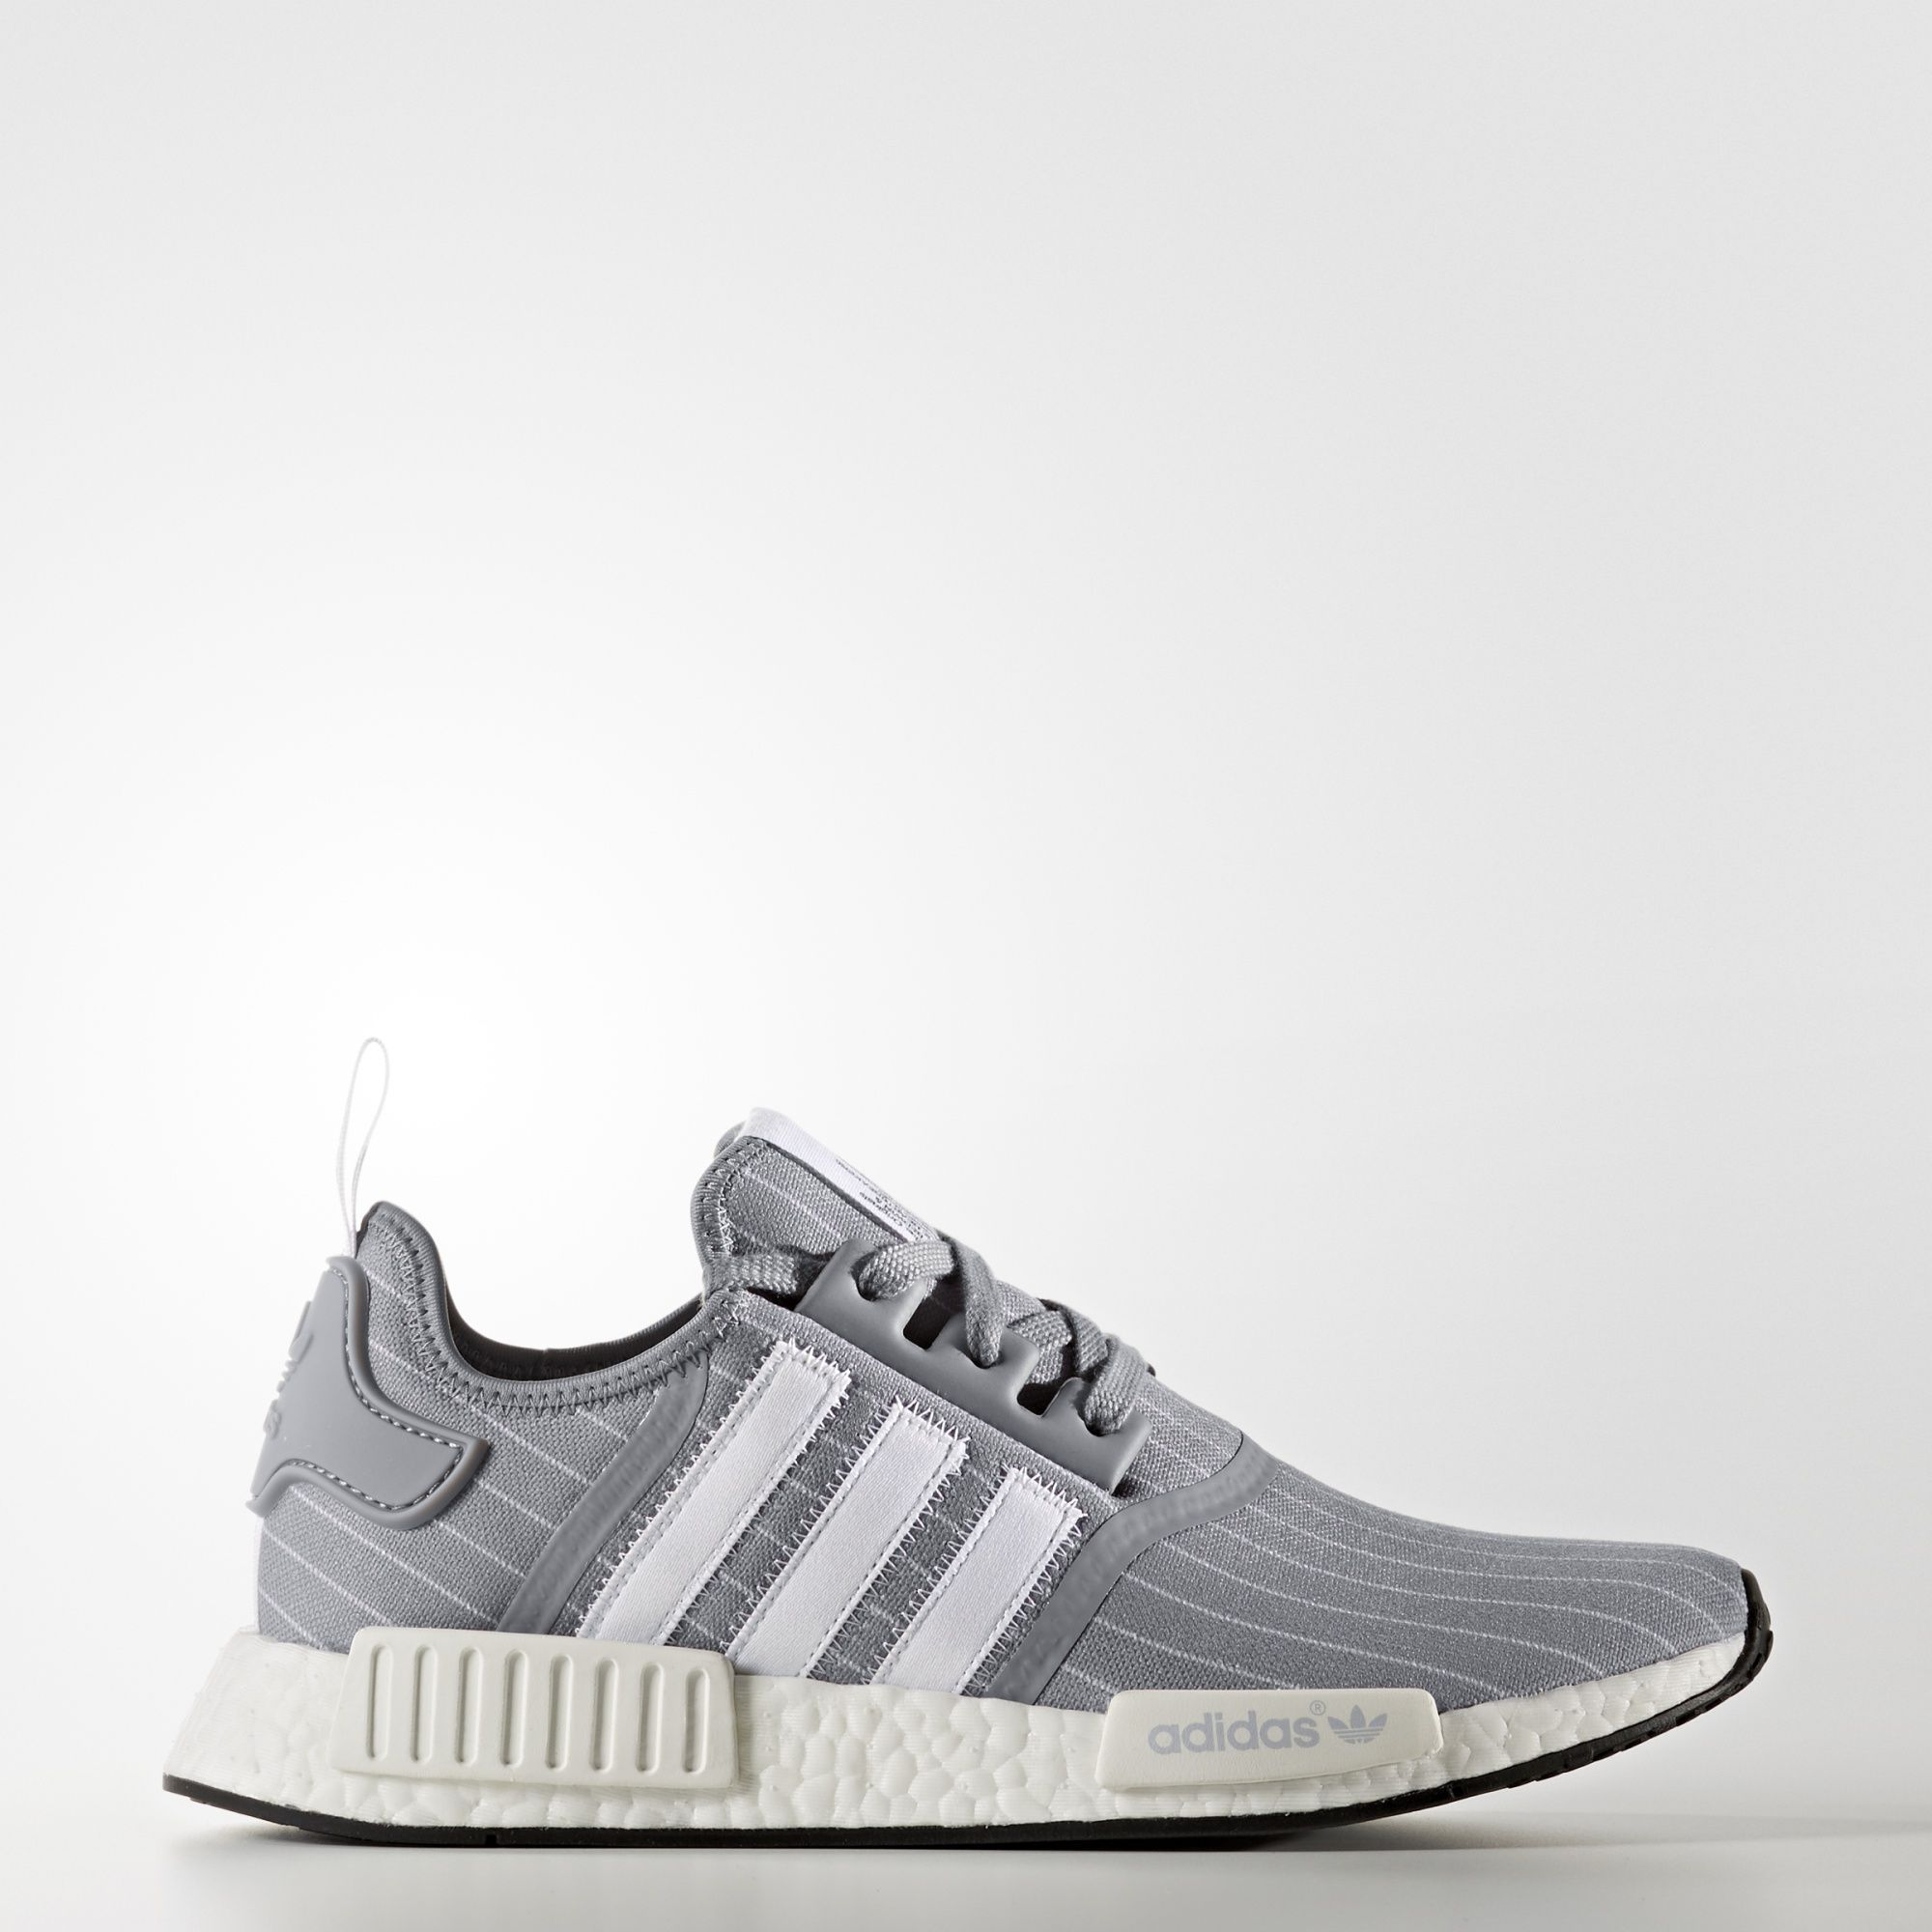 save off 94e4e 9c2c7 adidas - NMDR1 Bedwin Shoes  Only WOMEN  Pinterest  Nmd, Nmd r1 and Adidas  nmd r1